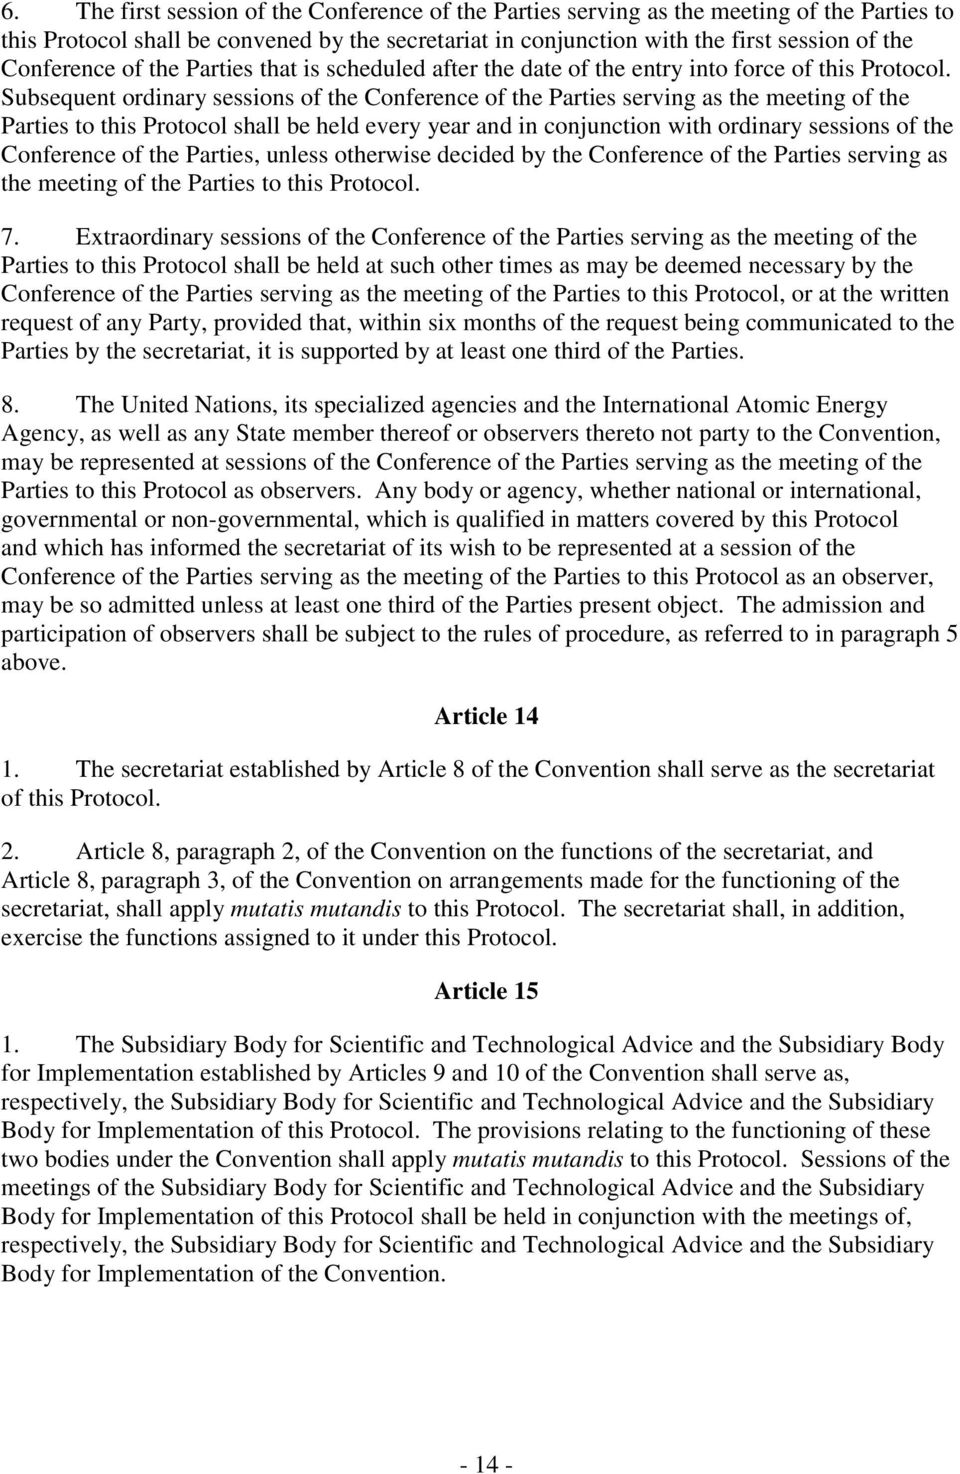 Subsequent ordinary sessions of the Conference of the Parties serving as the meeting of the Parties to this Protocol shall be held every year and in conjunction with ordinary sessions of the